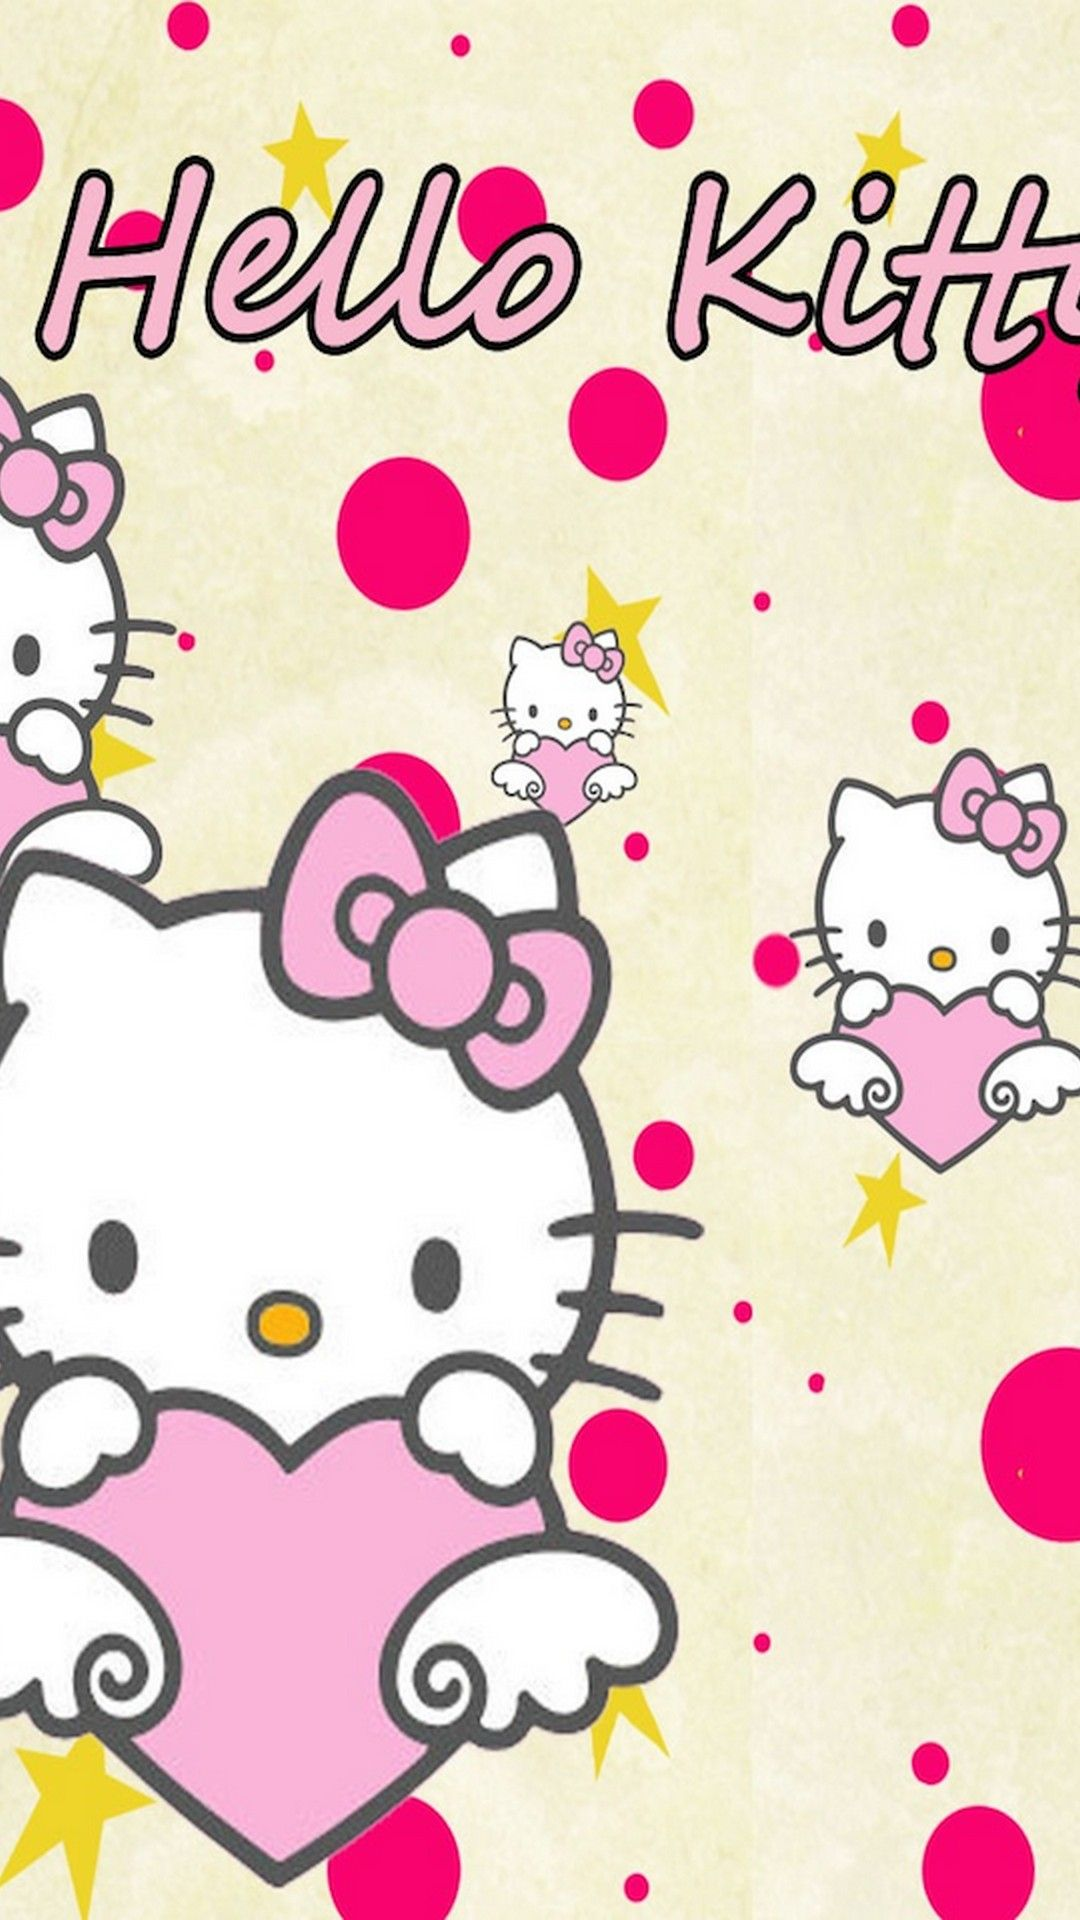 Sanrio Hello Kitty Hd Wallpaper For Iphone Hello Kitty Wallpaper